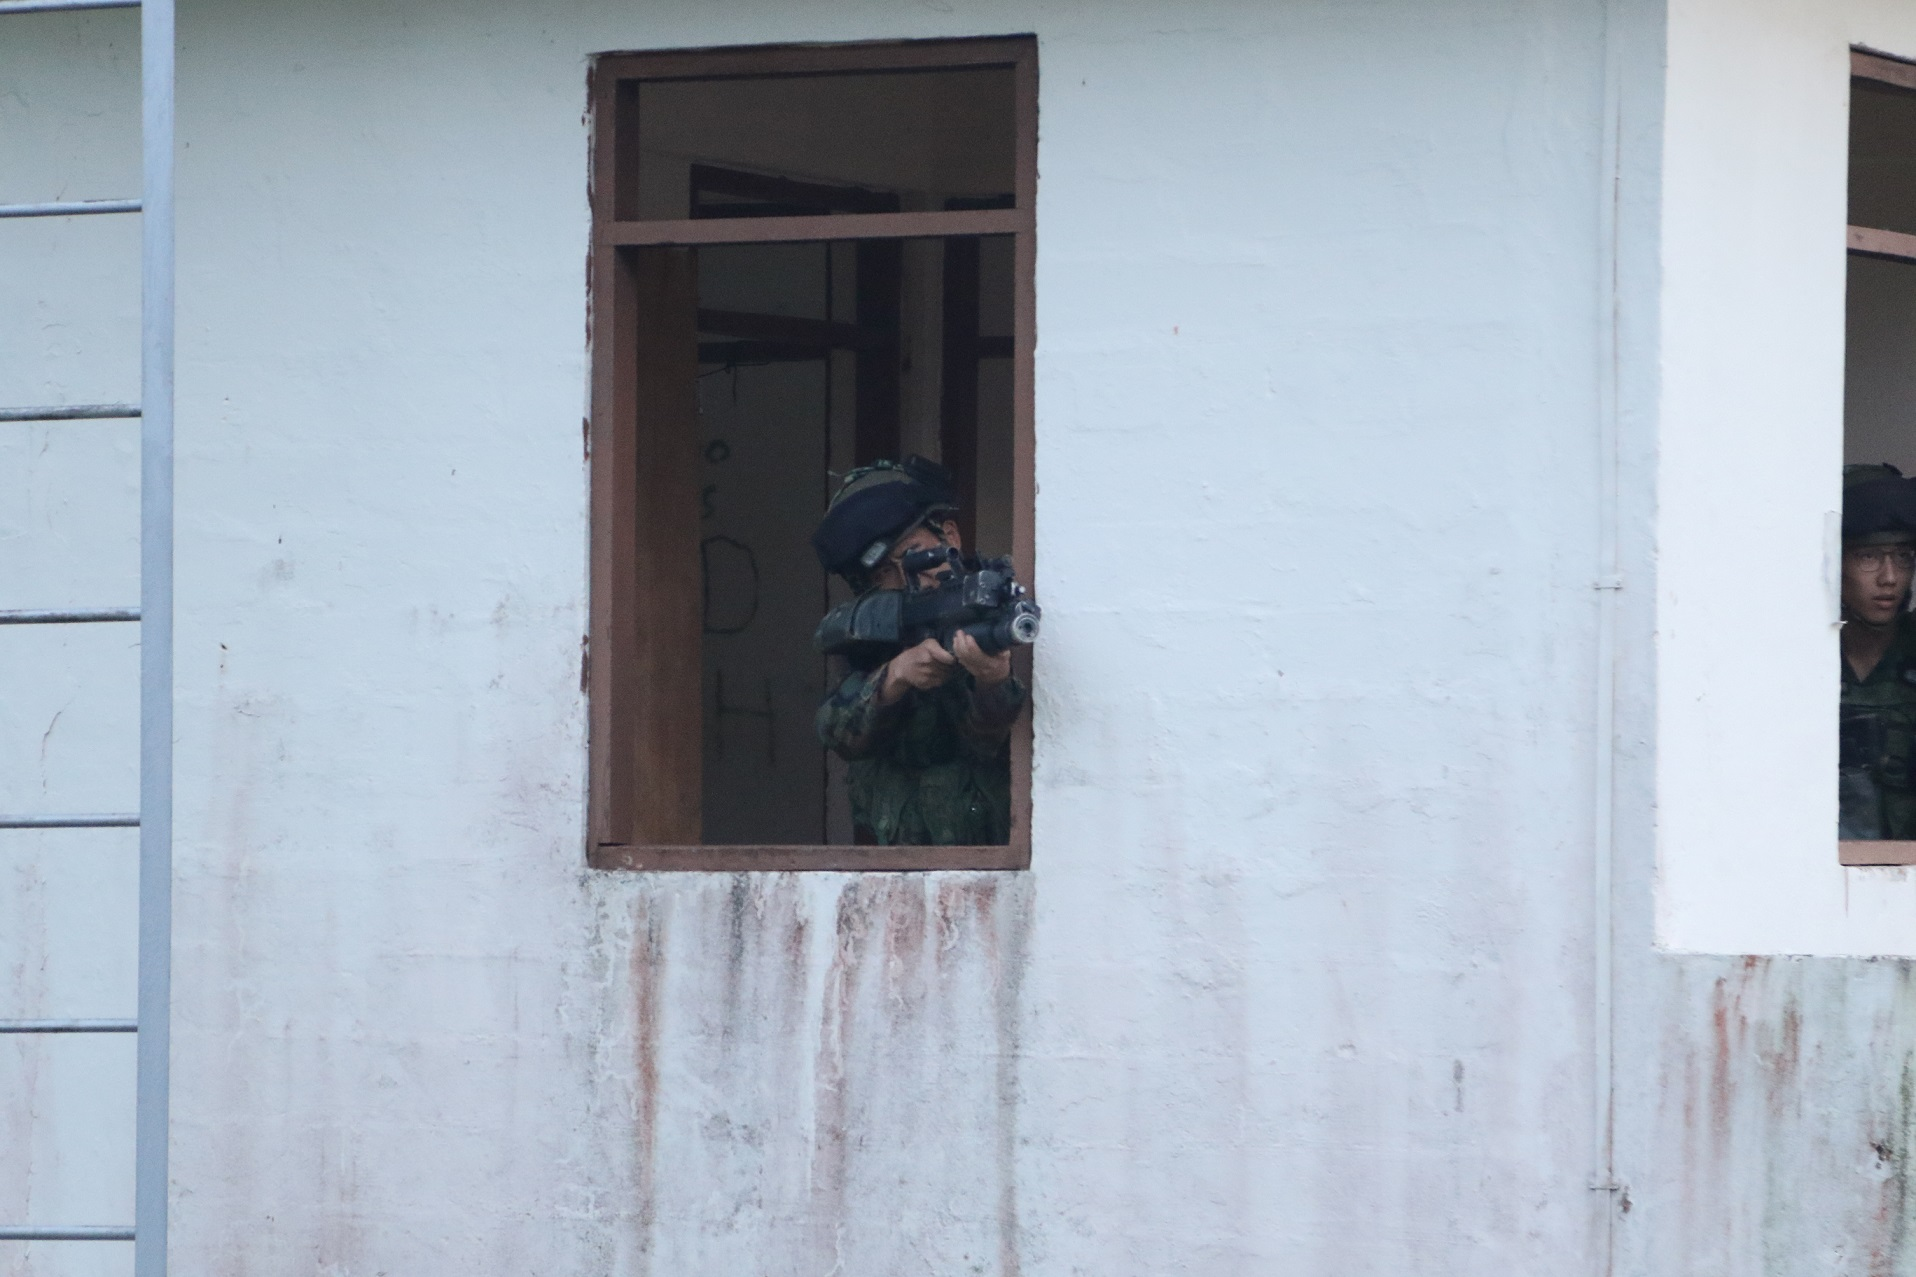 One of the OPFOR soldiers taking cover in the building.